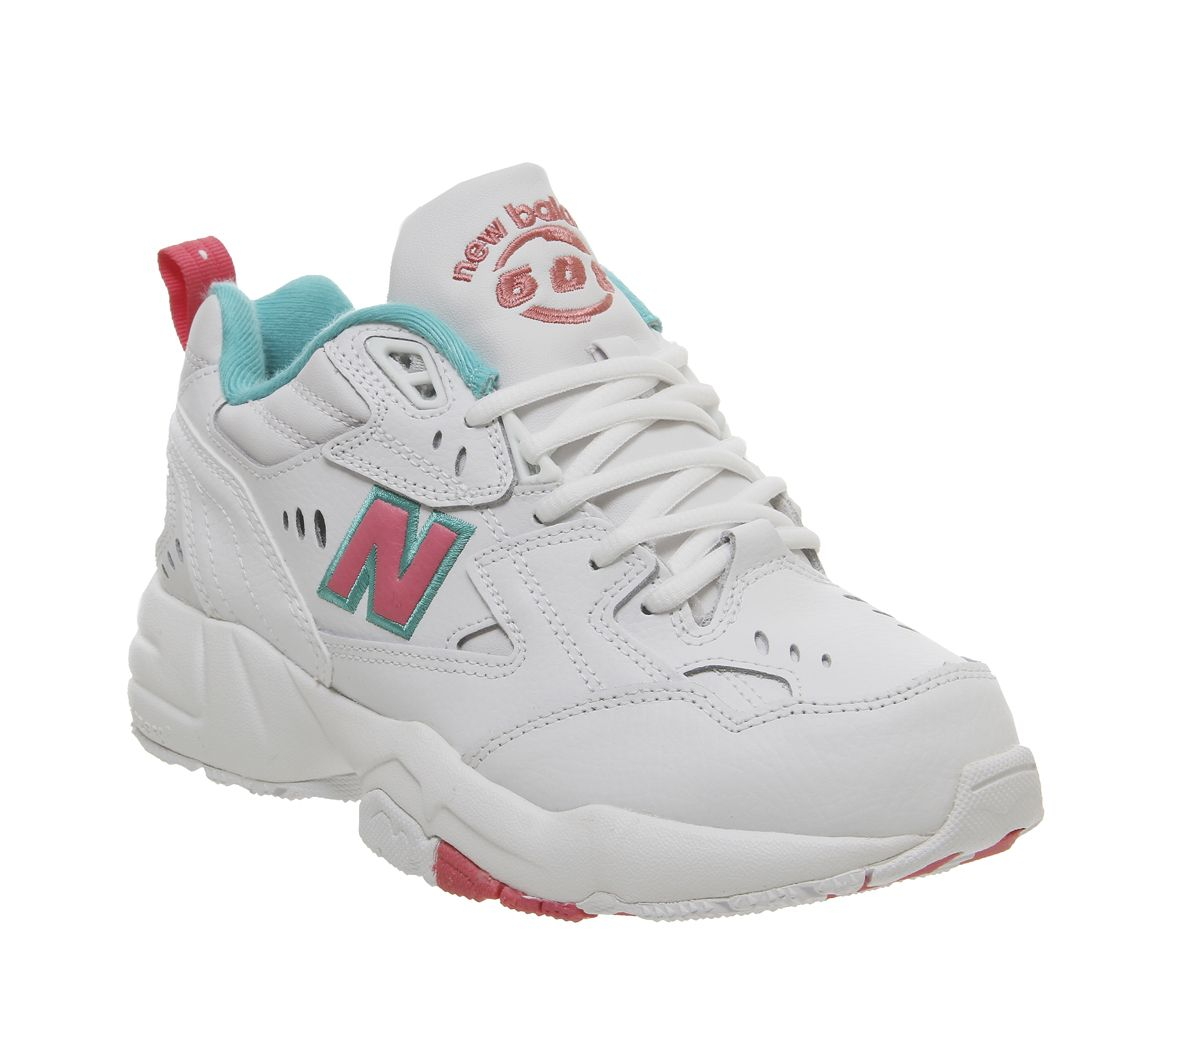 huge discount 5748e 27fdc New Balance 608 Trainers White Pink Green - Hers trainers